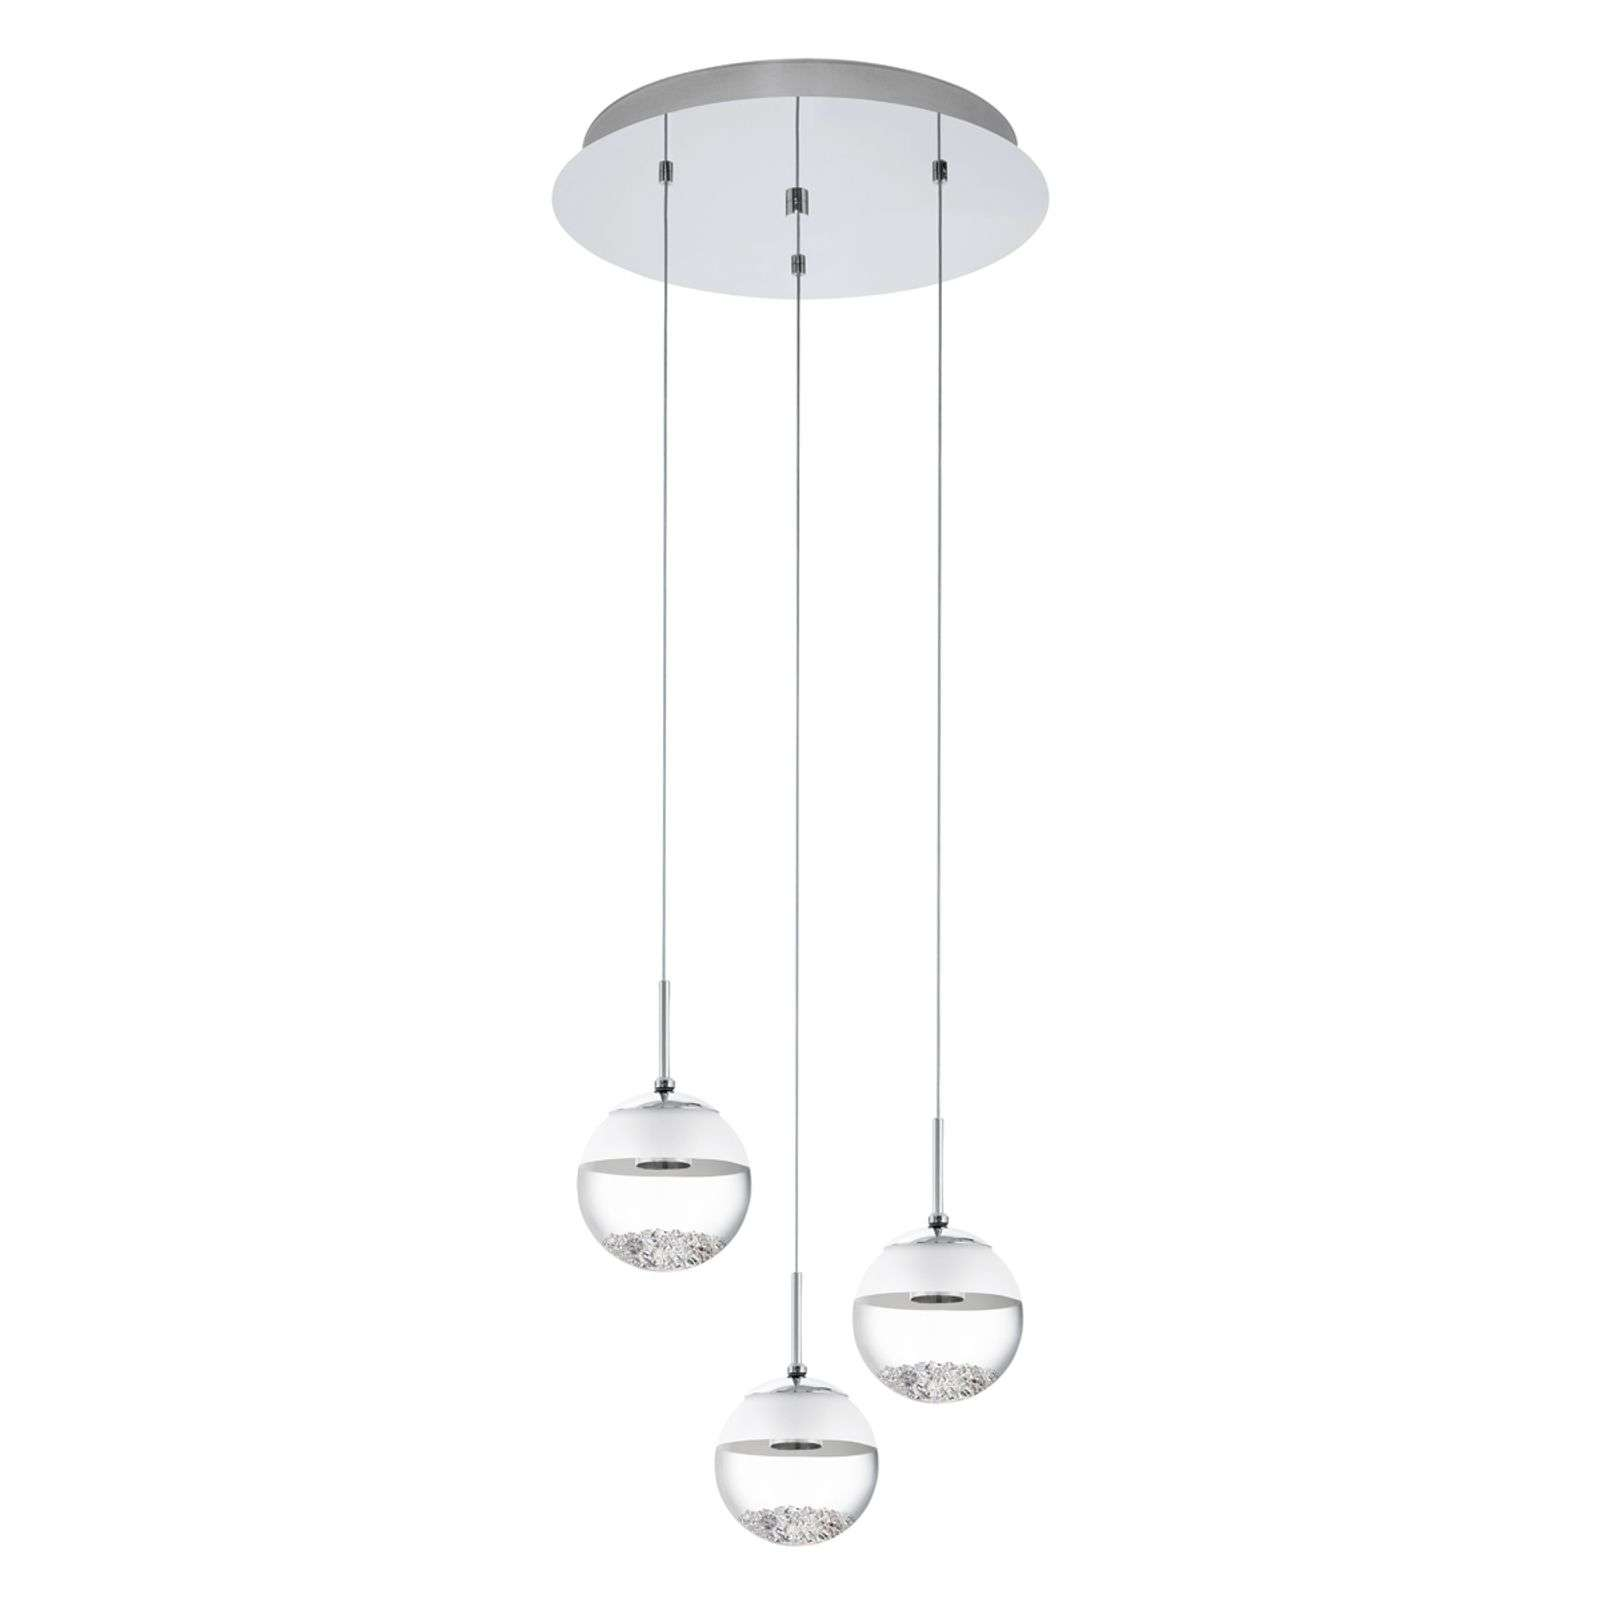 Ronde LED hanglamp Montefio in kristal 3 lichtbr.